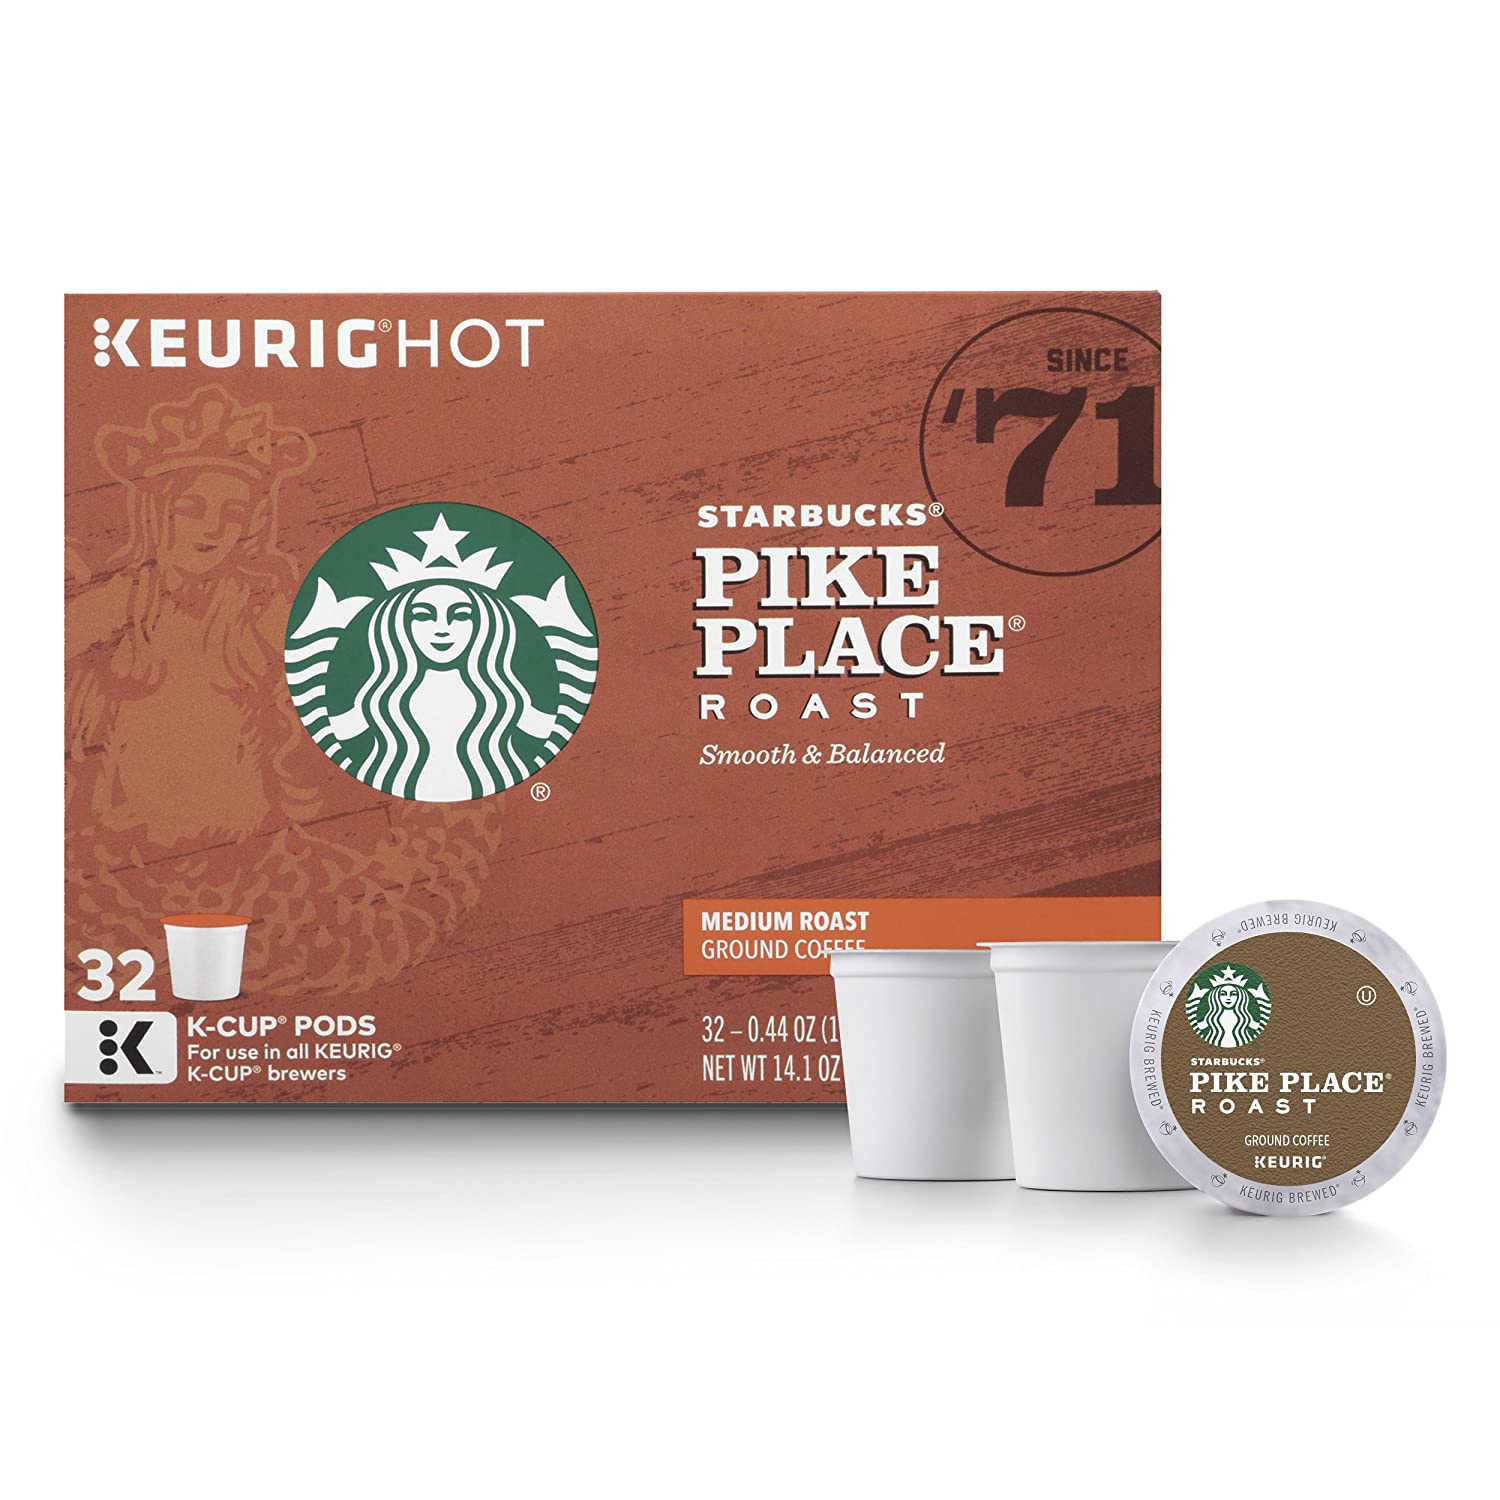 Starbucks Pike Place Roast Medium Roast Single Cup Coffee for Keurig Brewers, 32 Count